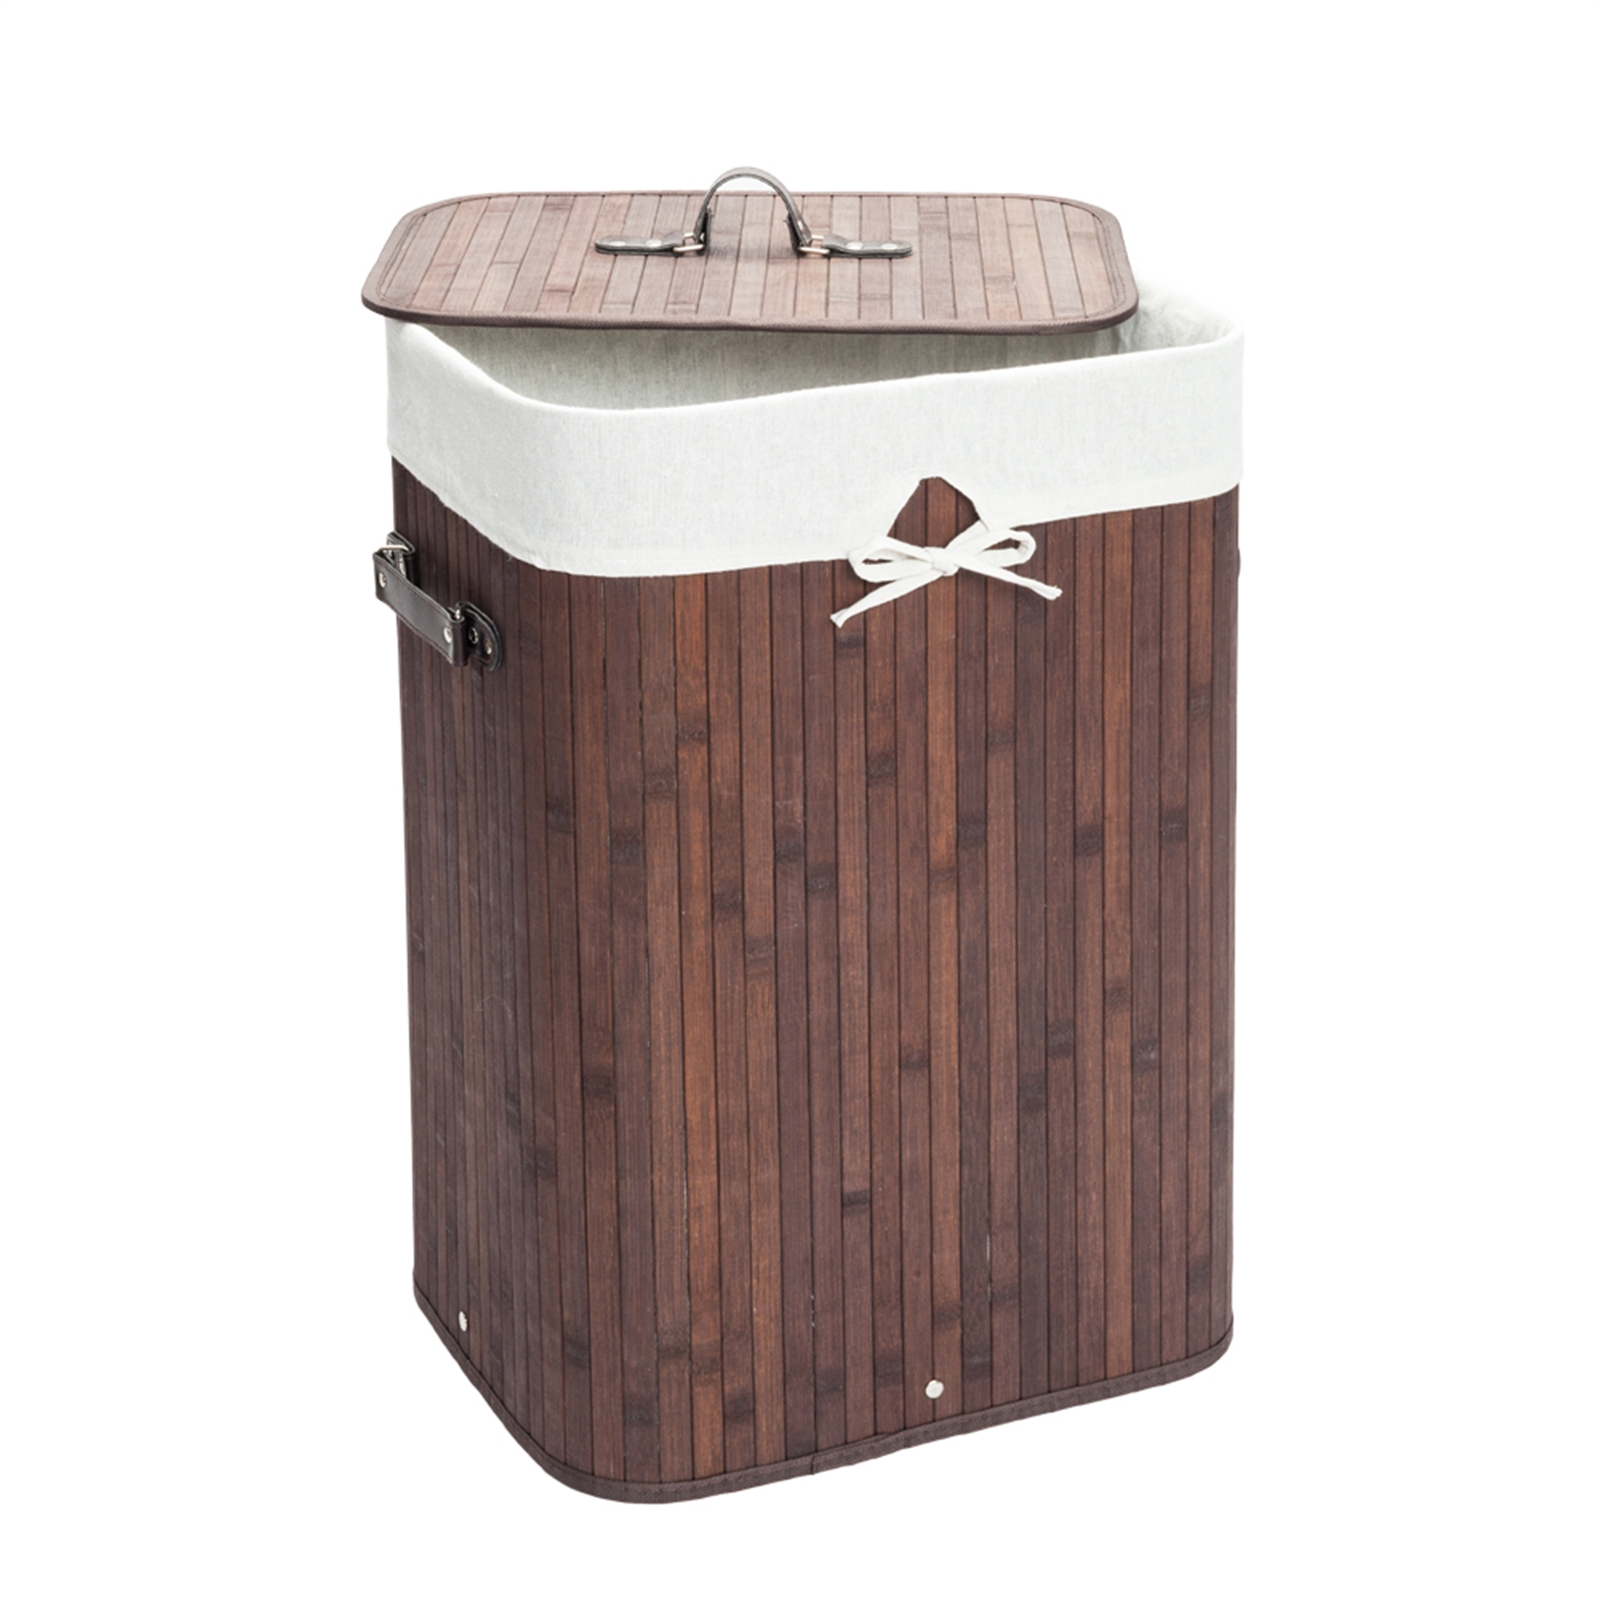 [US Direct] 1 Set Bamboo Single-compartment Folding  Dirty  Clothes  Hamper With Lid Side Carrying Handles Dark brown